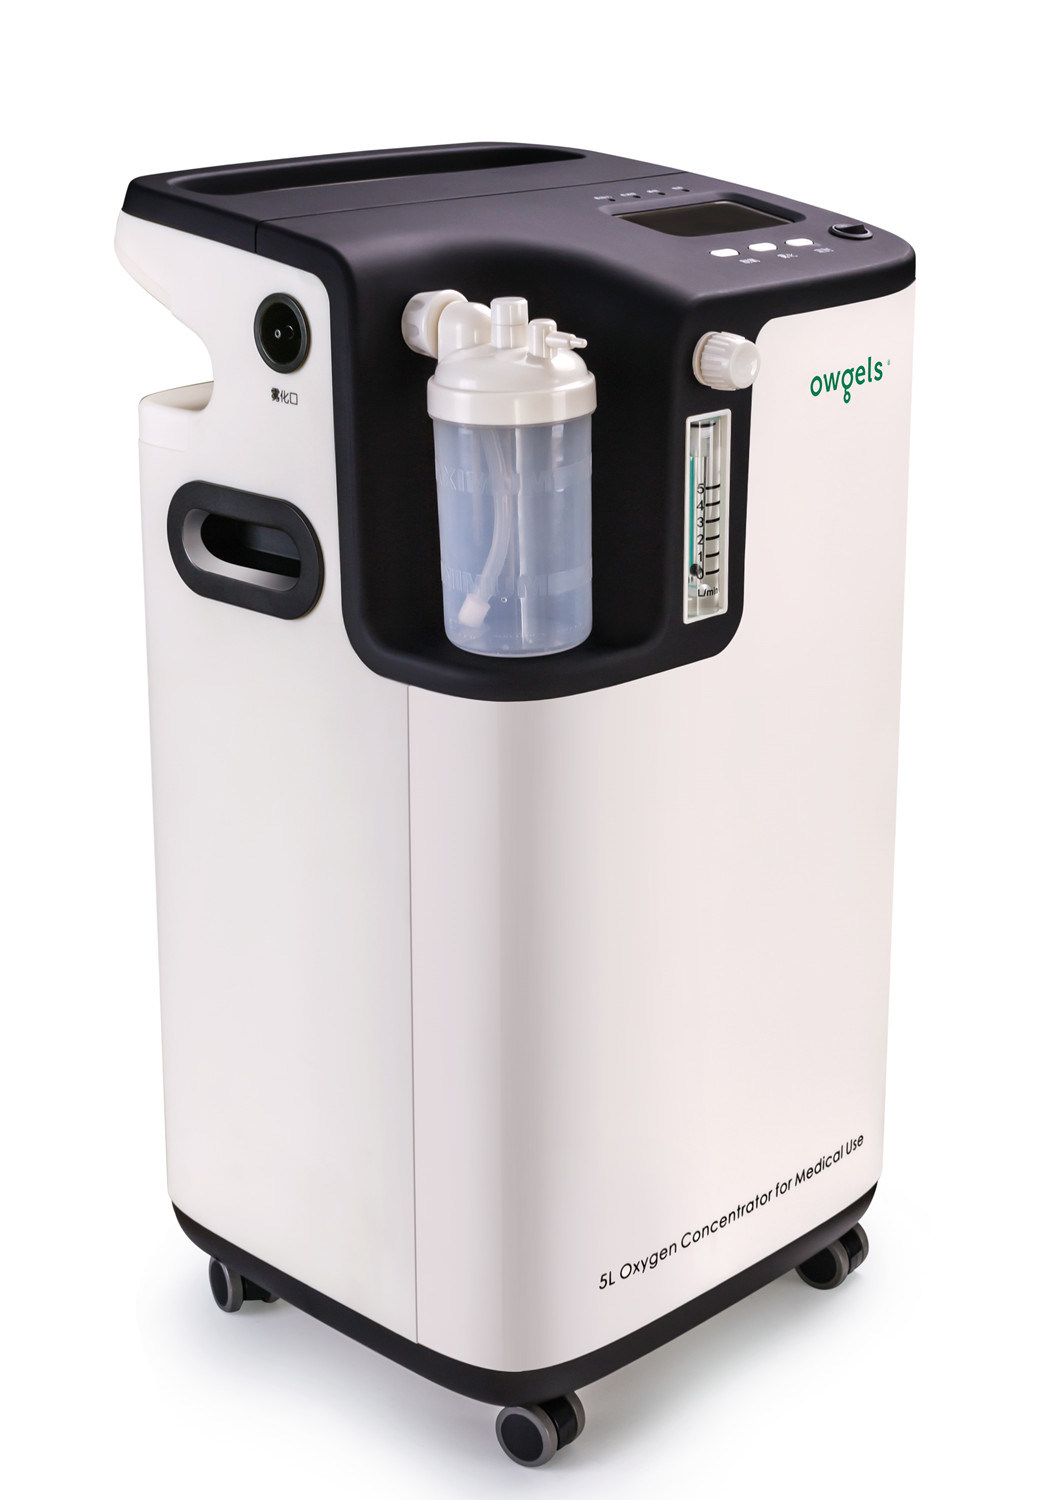 5L Low Noise Oxygen Concentrator with Nebulizer